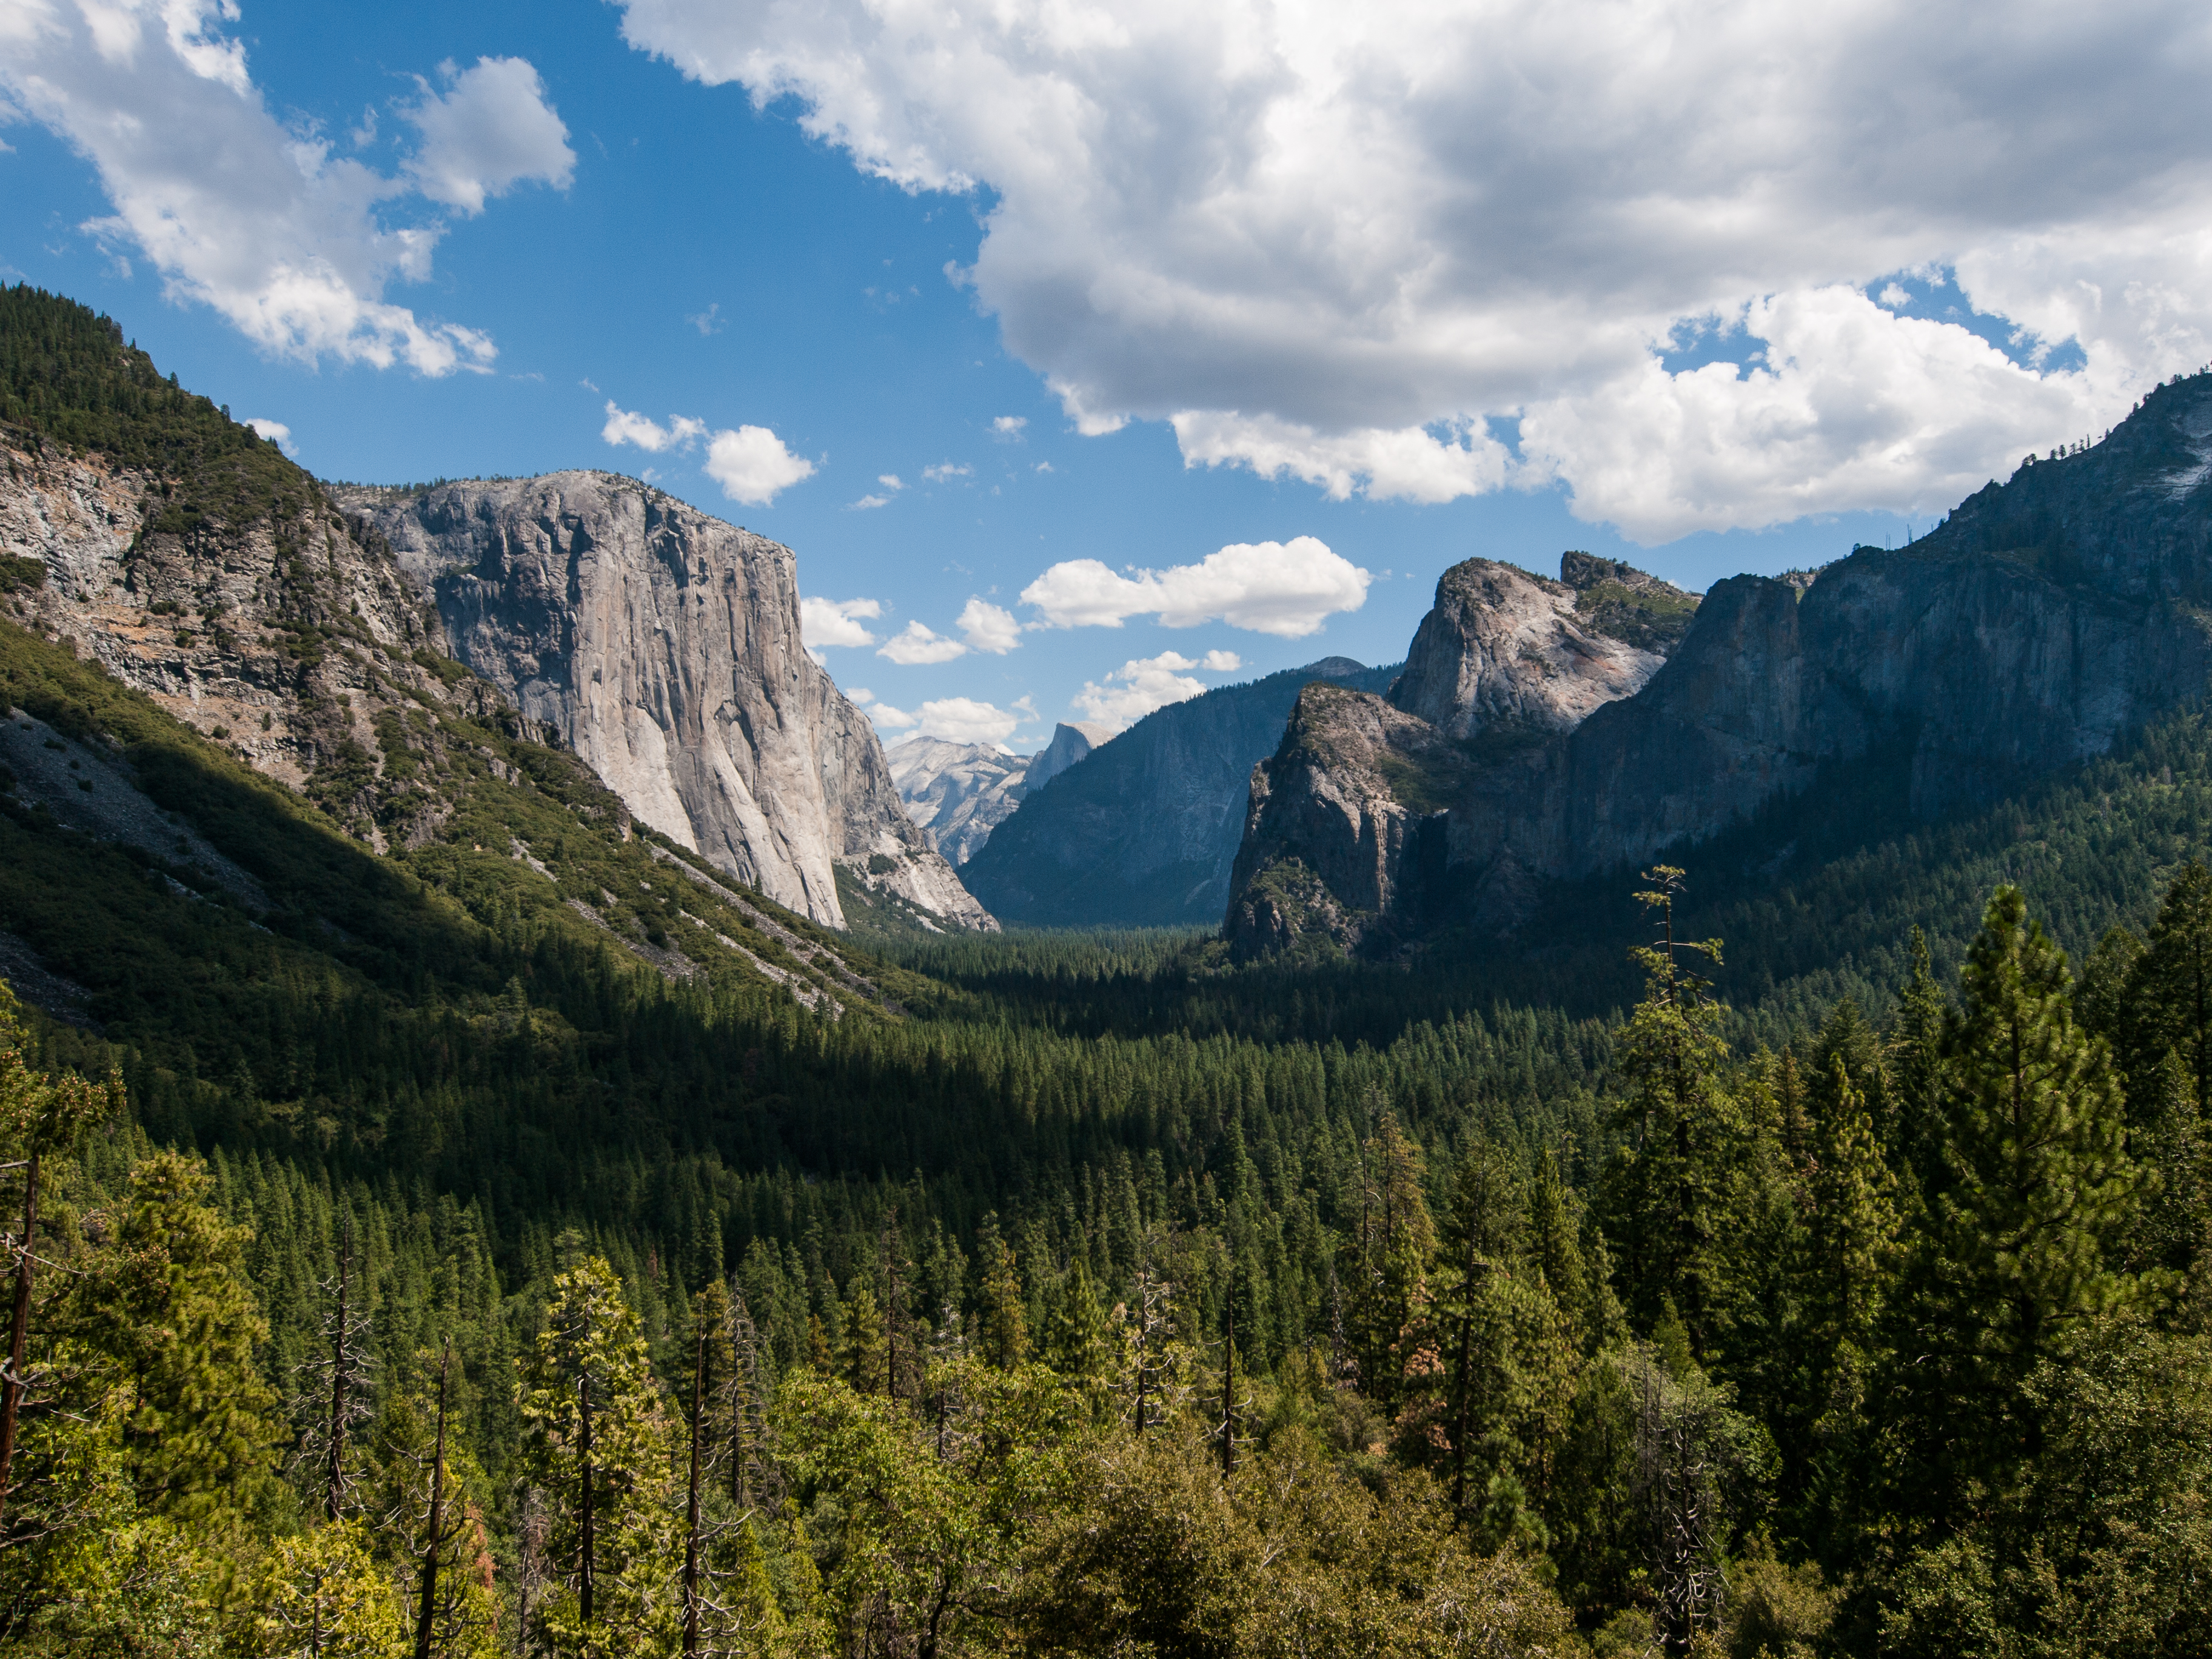 descriptive essay yosemite national park Of this glorious range the yosemite national park is a central section, thirty-six   it was in that essay that muir described meeting ralph waldo.